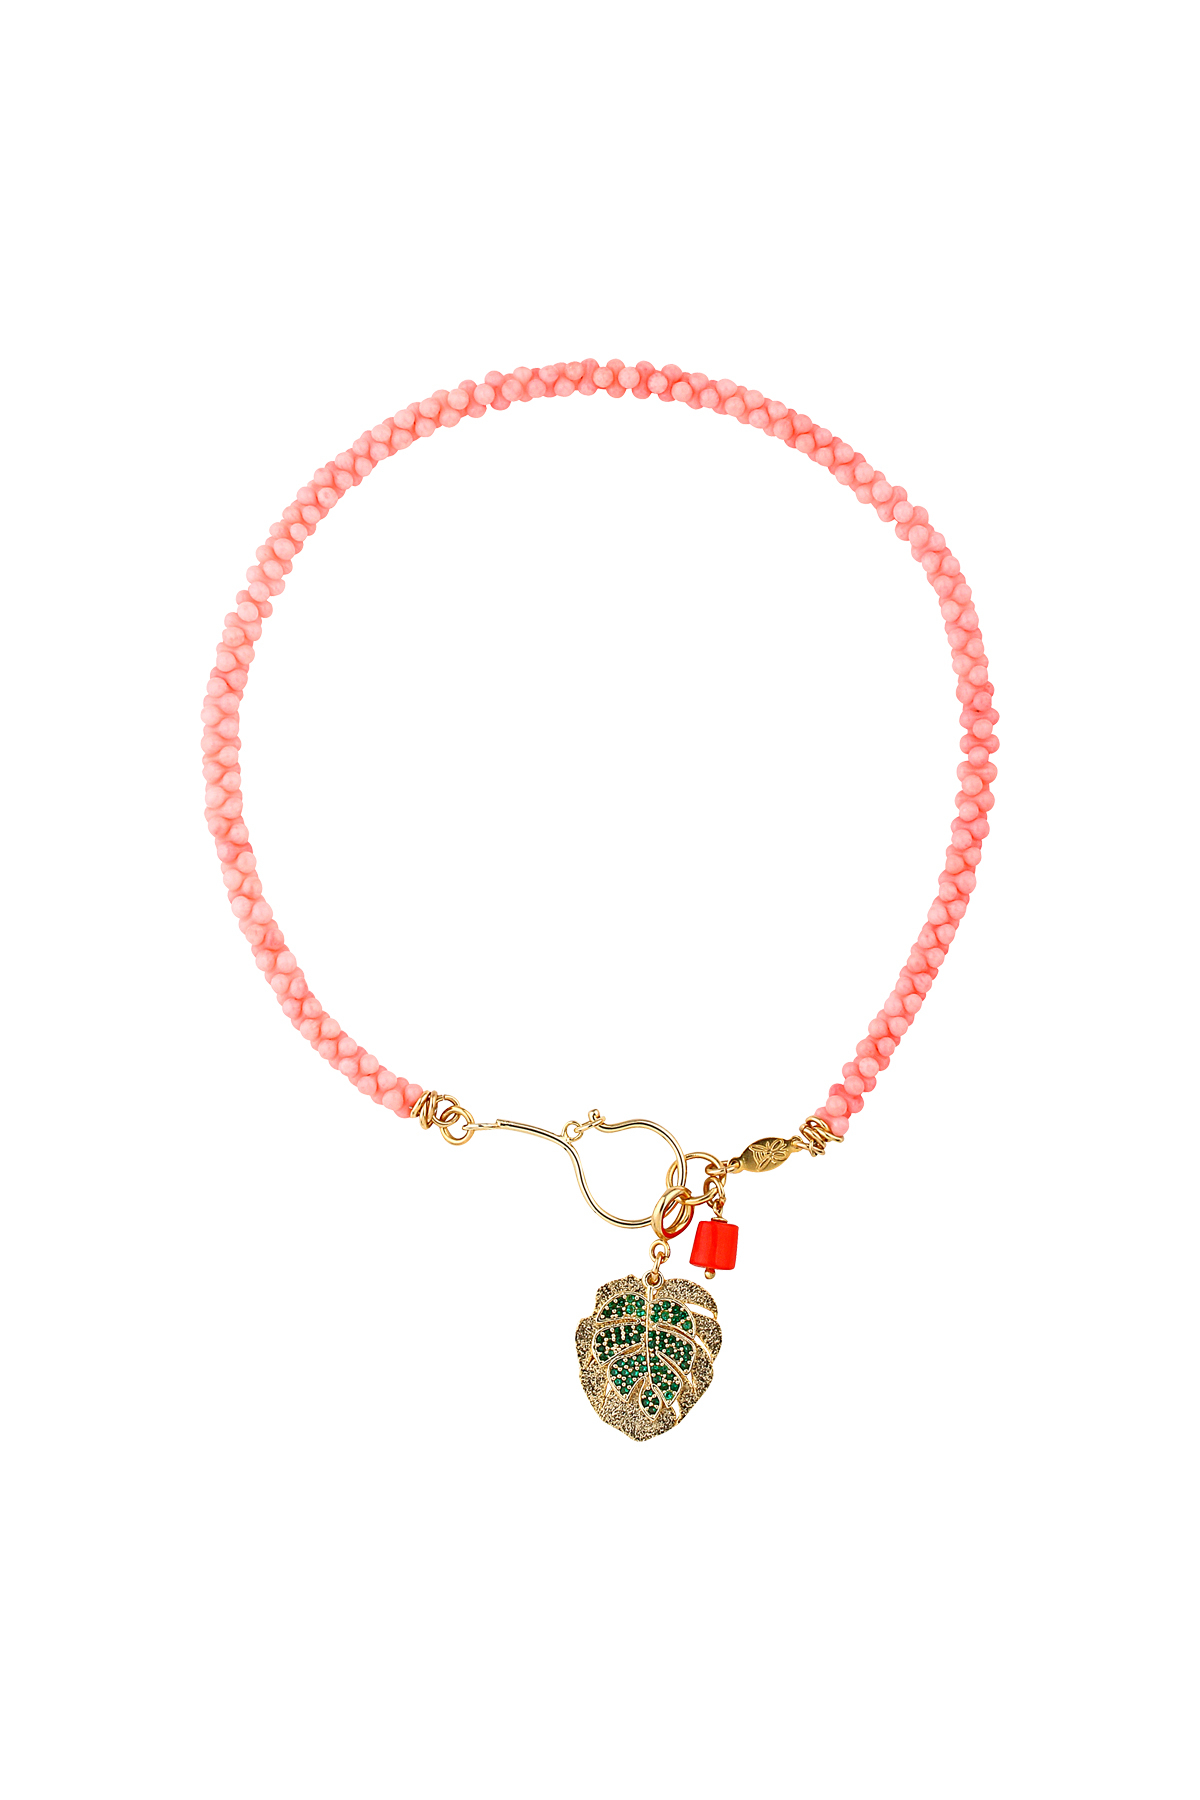 Tropic – Palm Leaf Pendant Necklace – Coral Nugget Beaded Necklace | App Inside Most Popular Tropical Palm Pendant Necklaces (View 6 of 25)